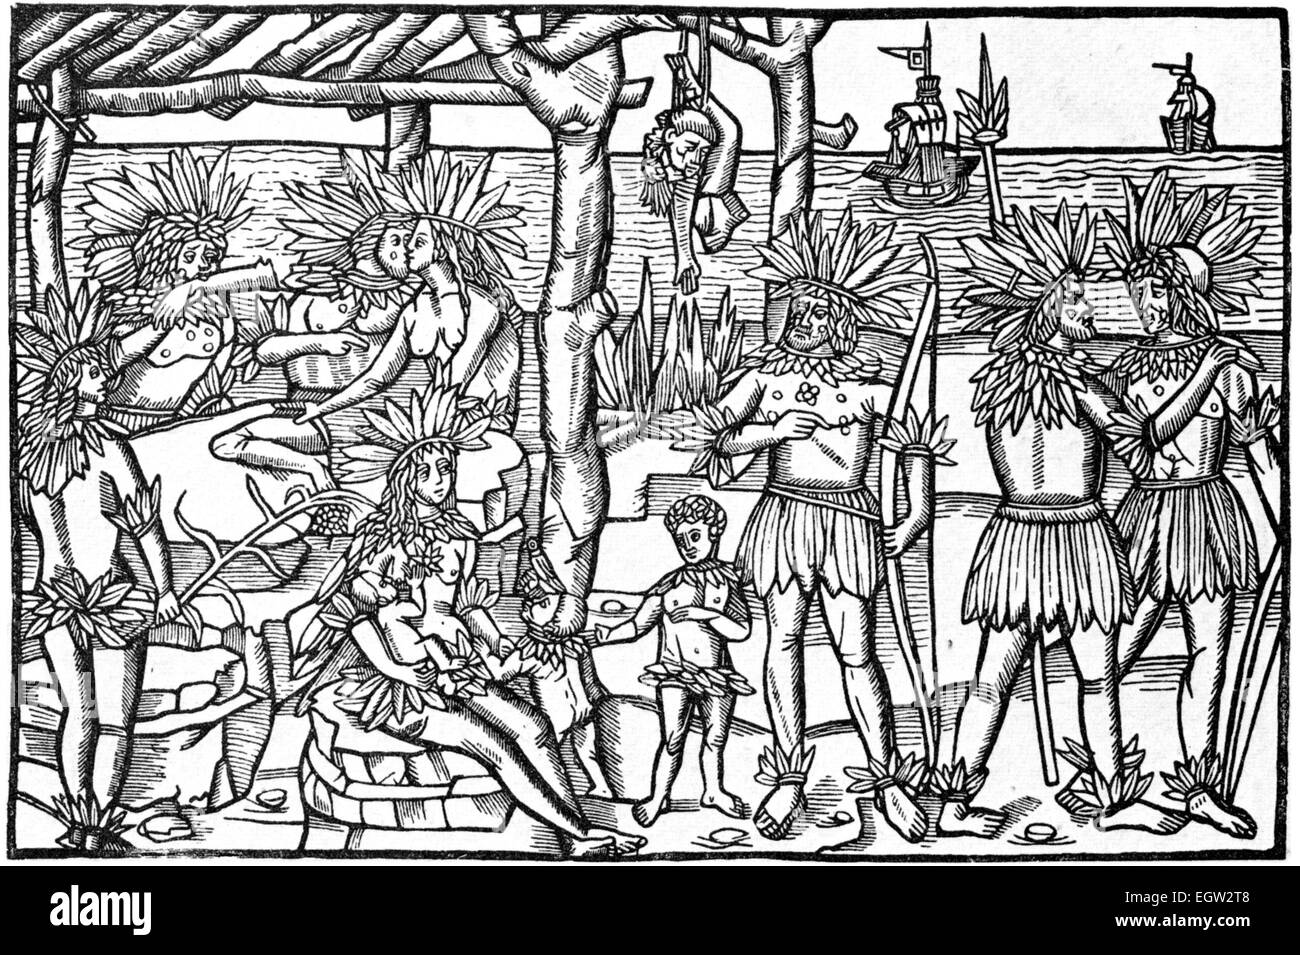 DISCOVERY OF SOUTH AMERICA A German woodcut about 1505 showing native inhabitants - Stock Image